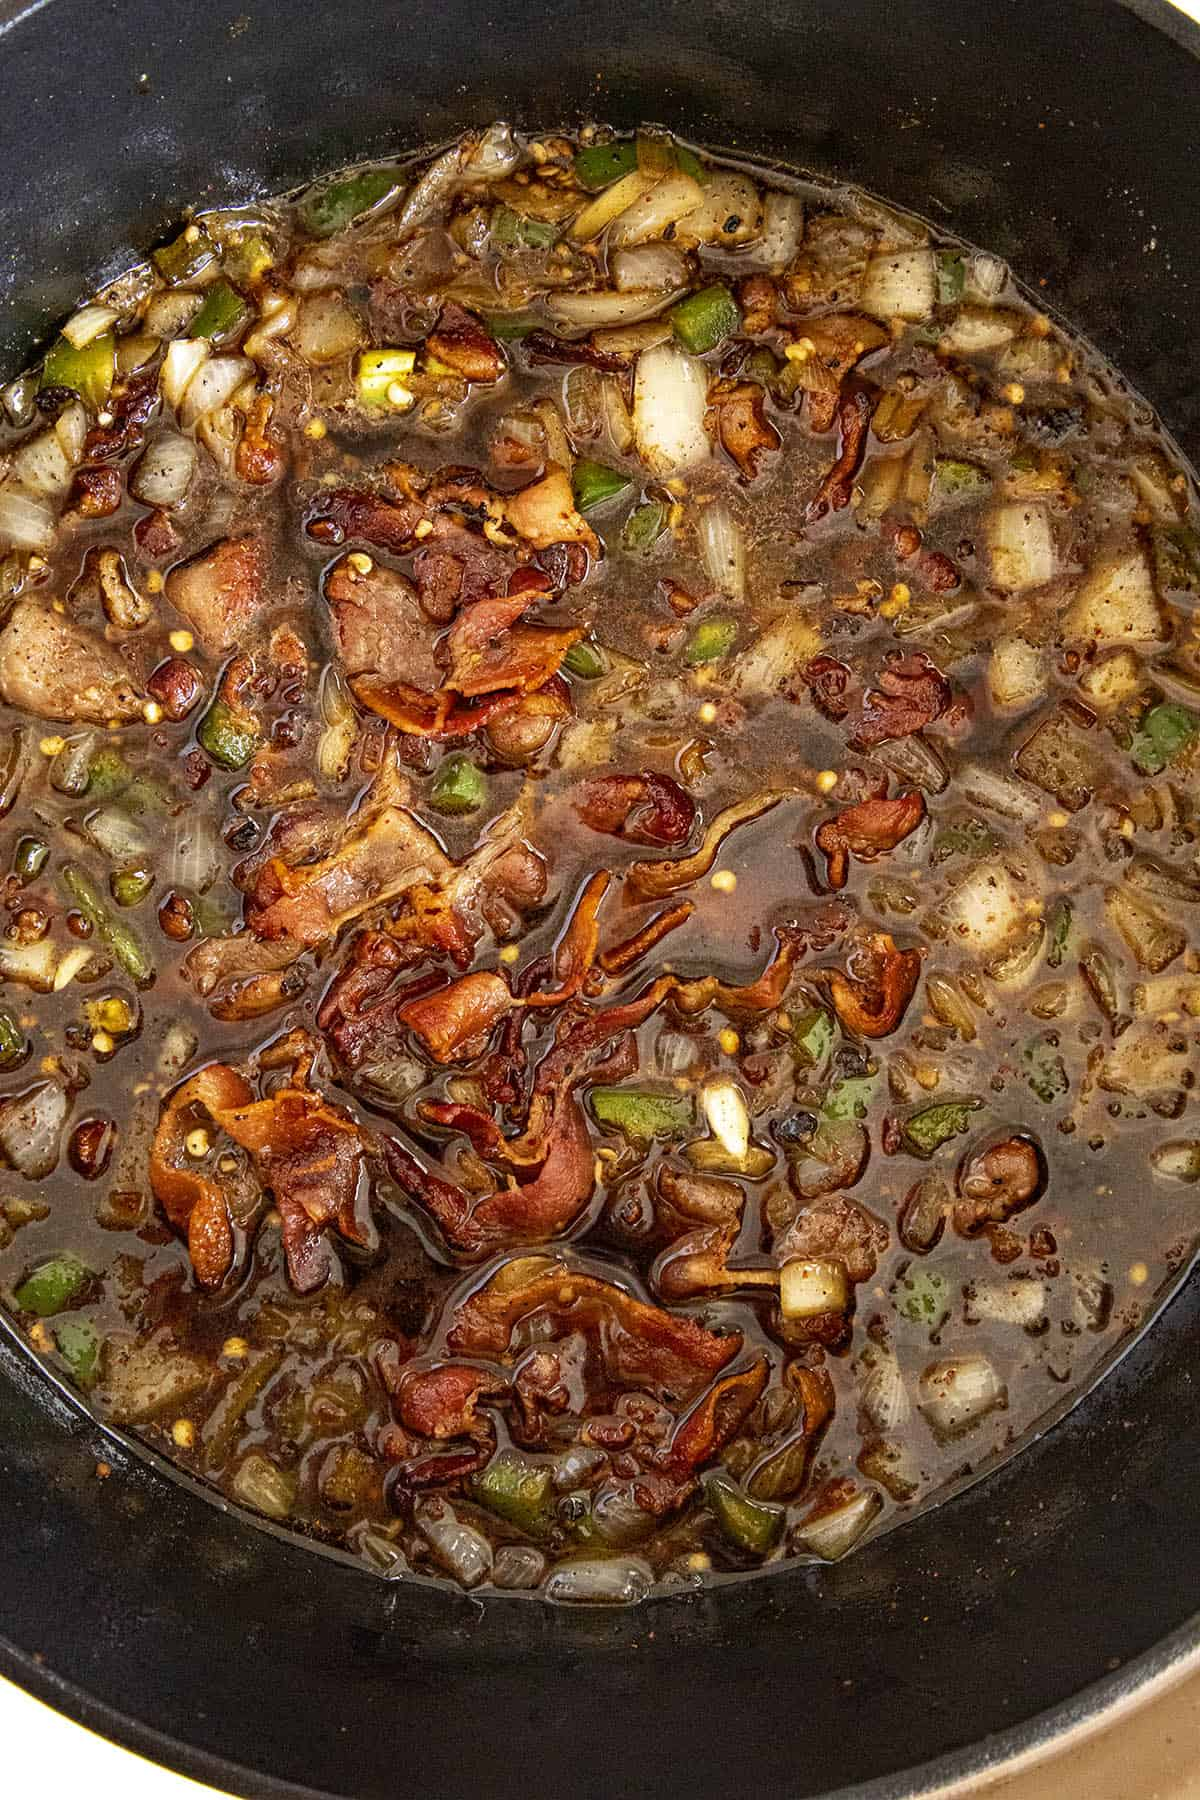 Bacon Jam starting to simmer in a pot